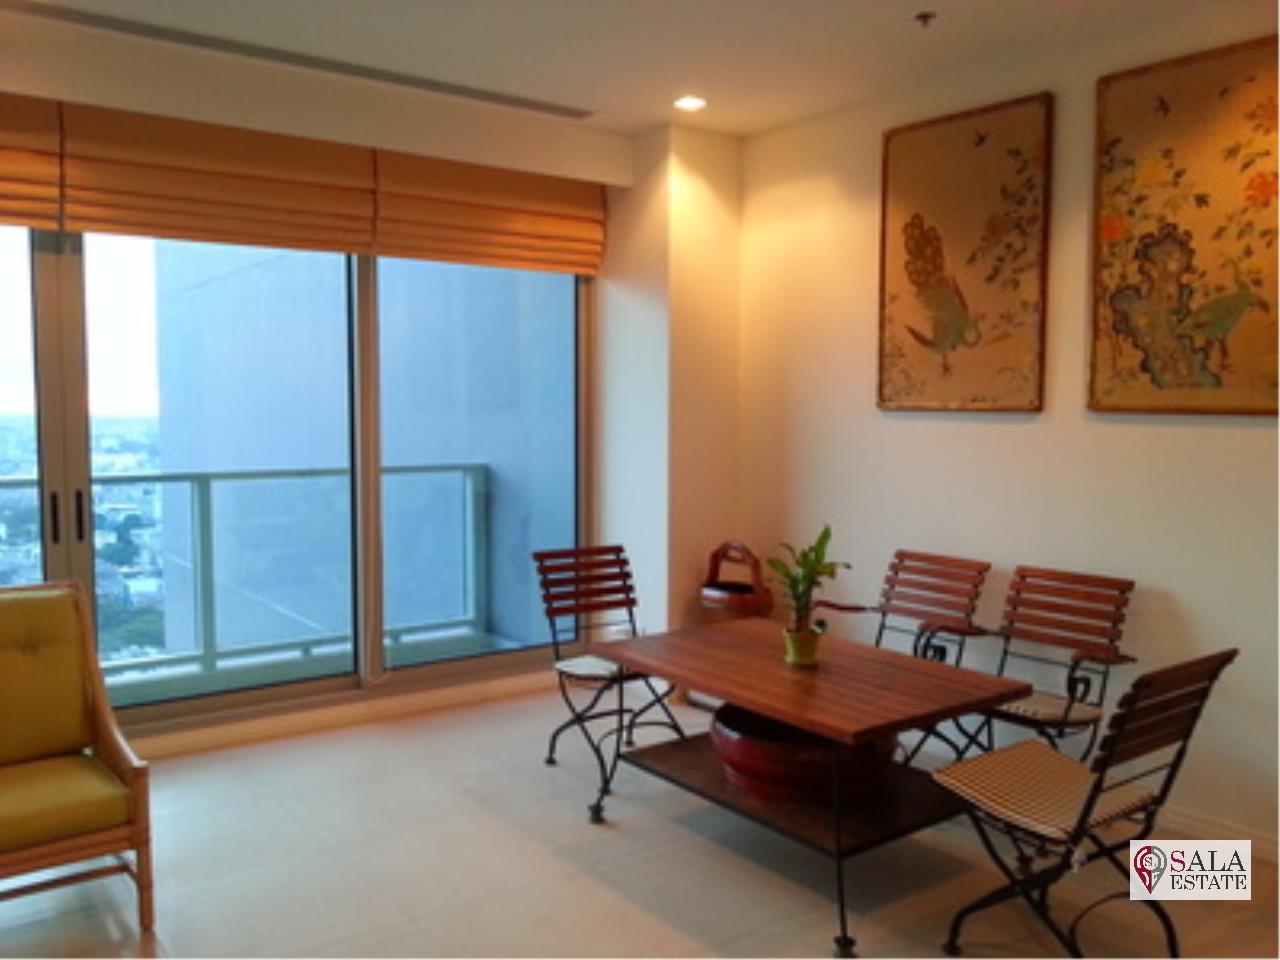 SALA ESTATE Agency's THE RIVER – NEAR CHAOPHRAYA RIVER, ICONSIAM 2